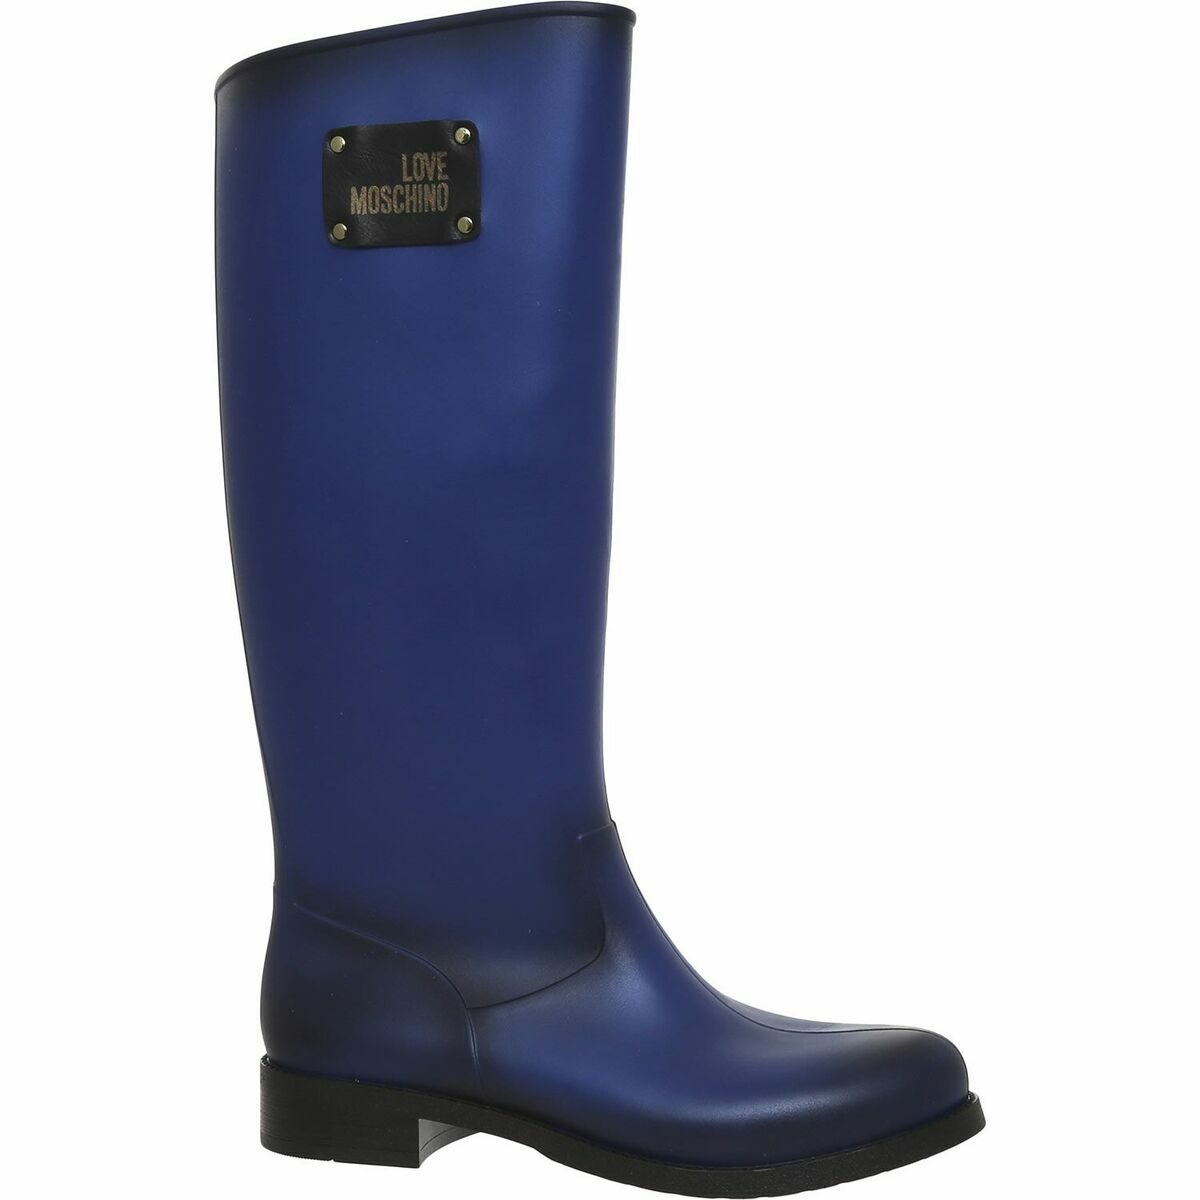 LOVE MOSCHINO Damenschuhe Größe UK 5 Blau / EU 38 Electric Blau 5 Wellington Stiefel 0be09b